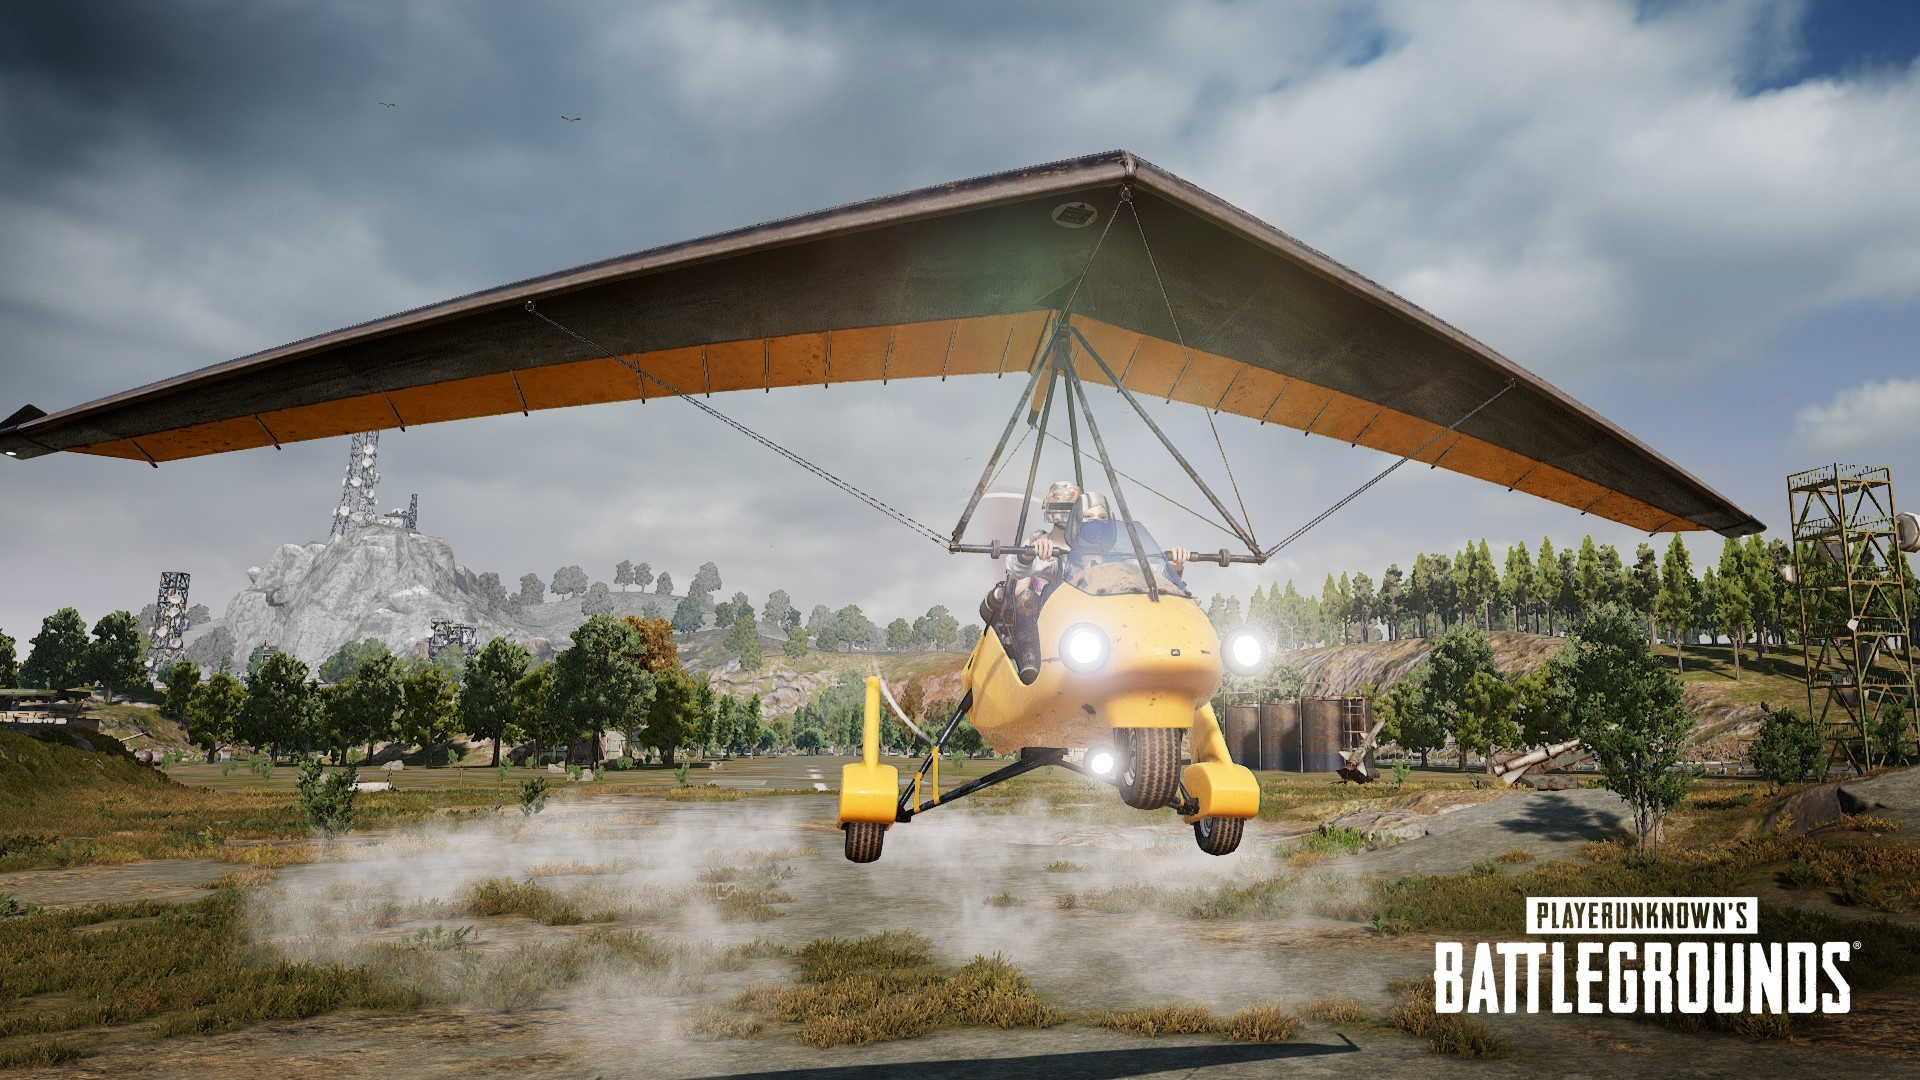 PUBG Season 6 releasing January 25, brings a new Karakin map, Motor Glider, Survivor Pass, and more - Notebookcheck.net